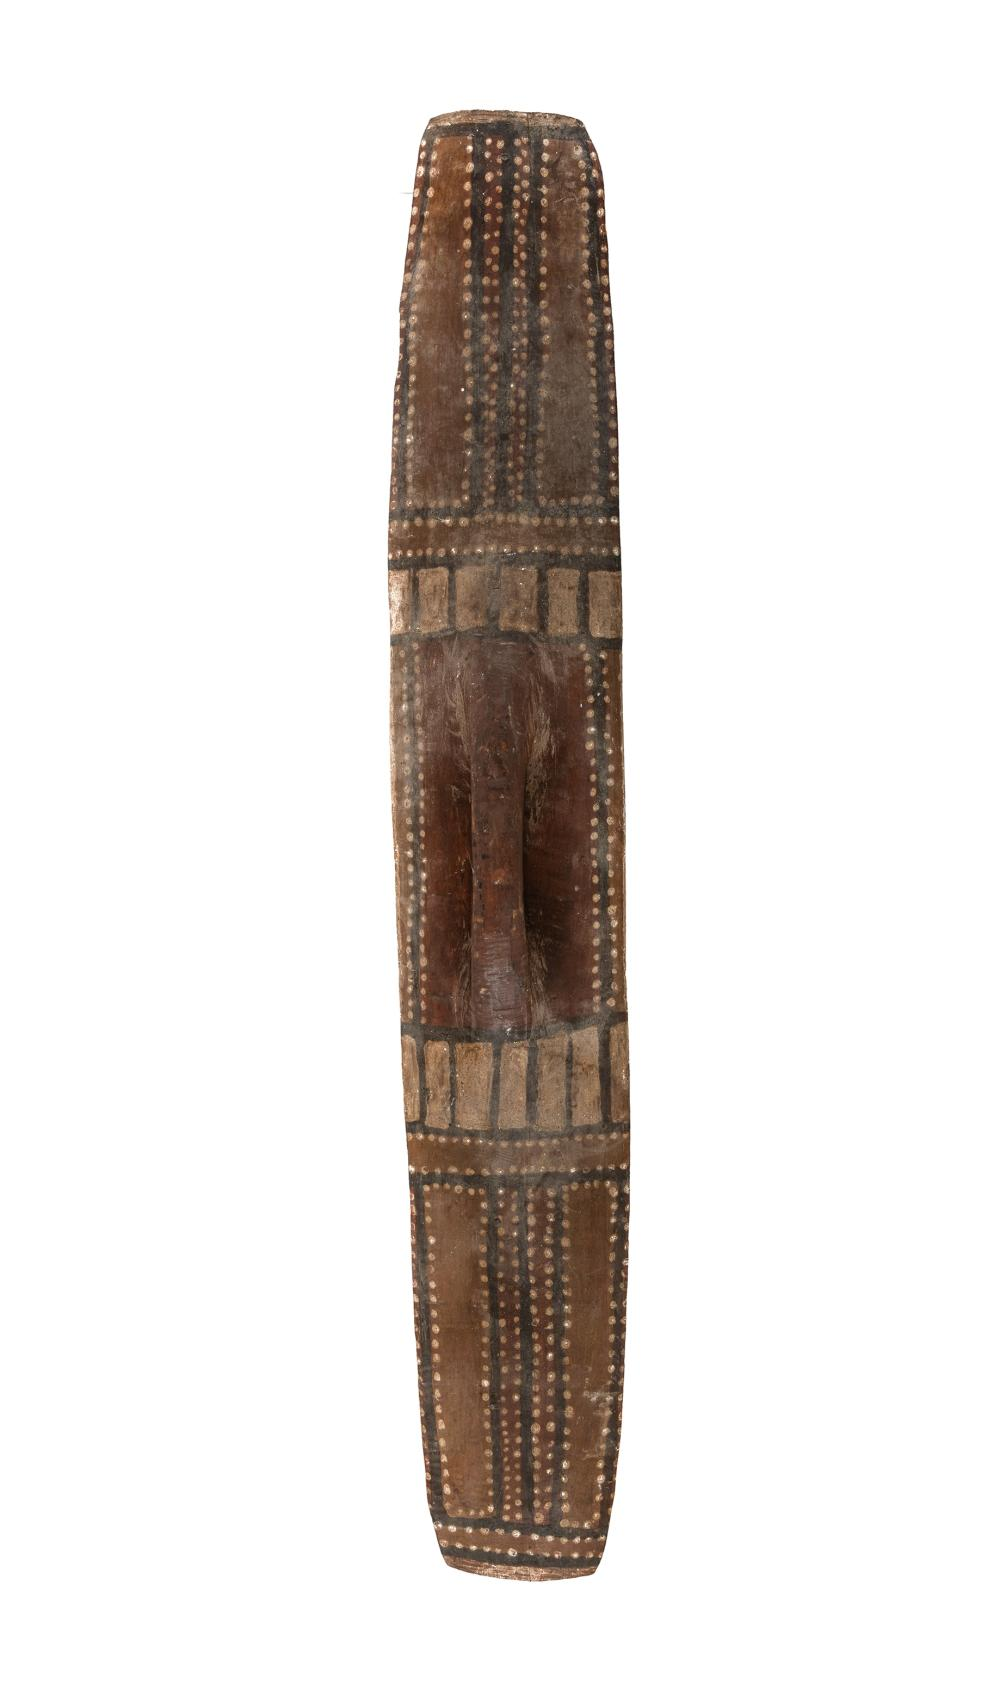 Western Australian Aboriginal Shield. Decorated with natural earth pigments. (H88cm) PROVENANCE: Estate of Ray Hughes.